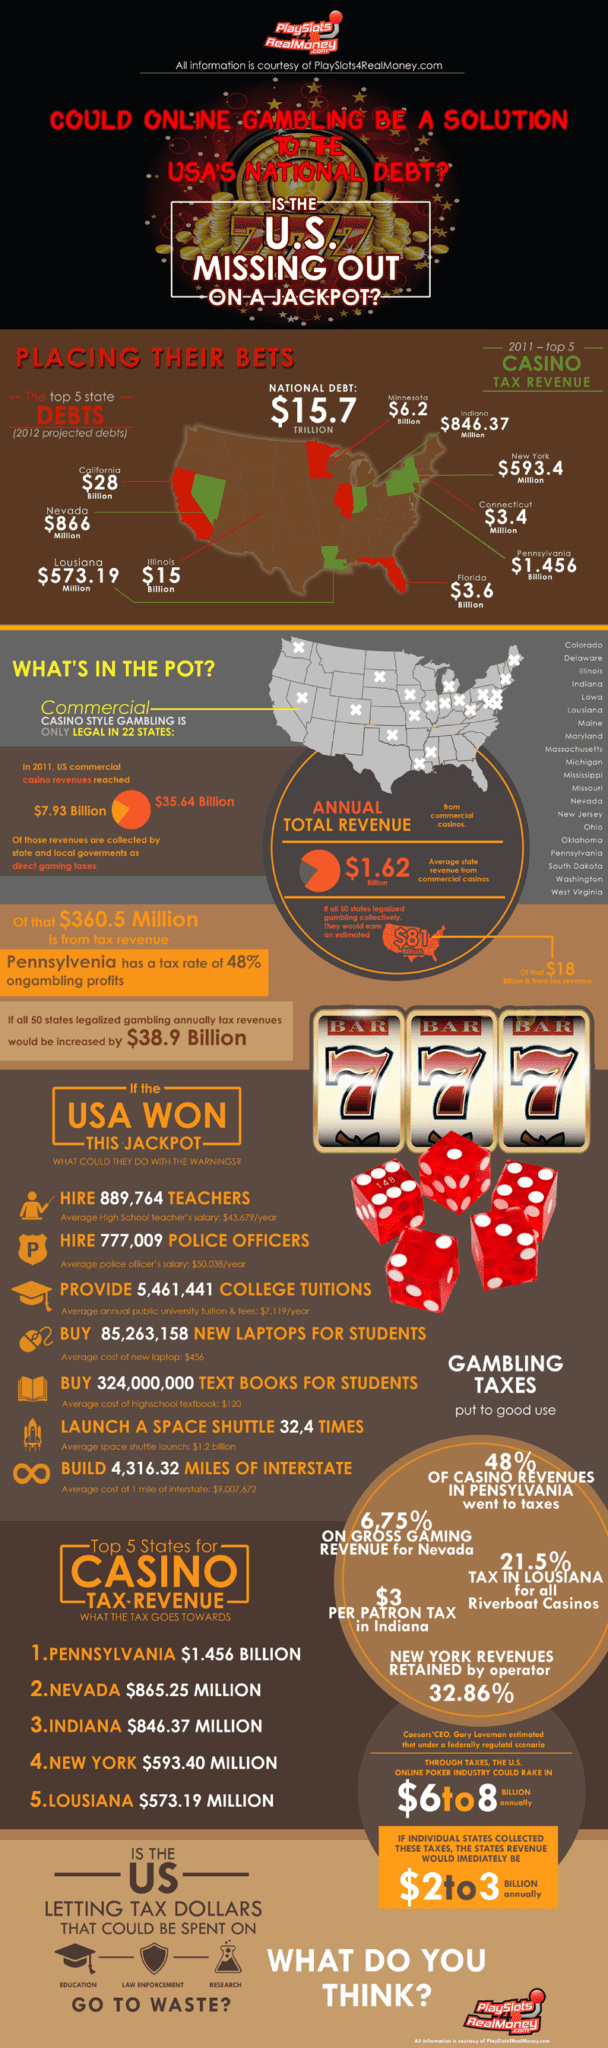 online real casino usa